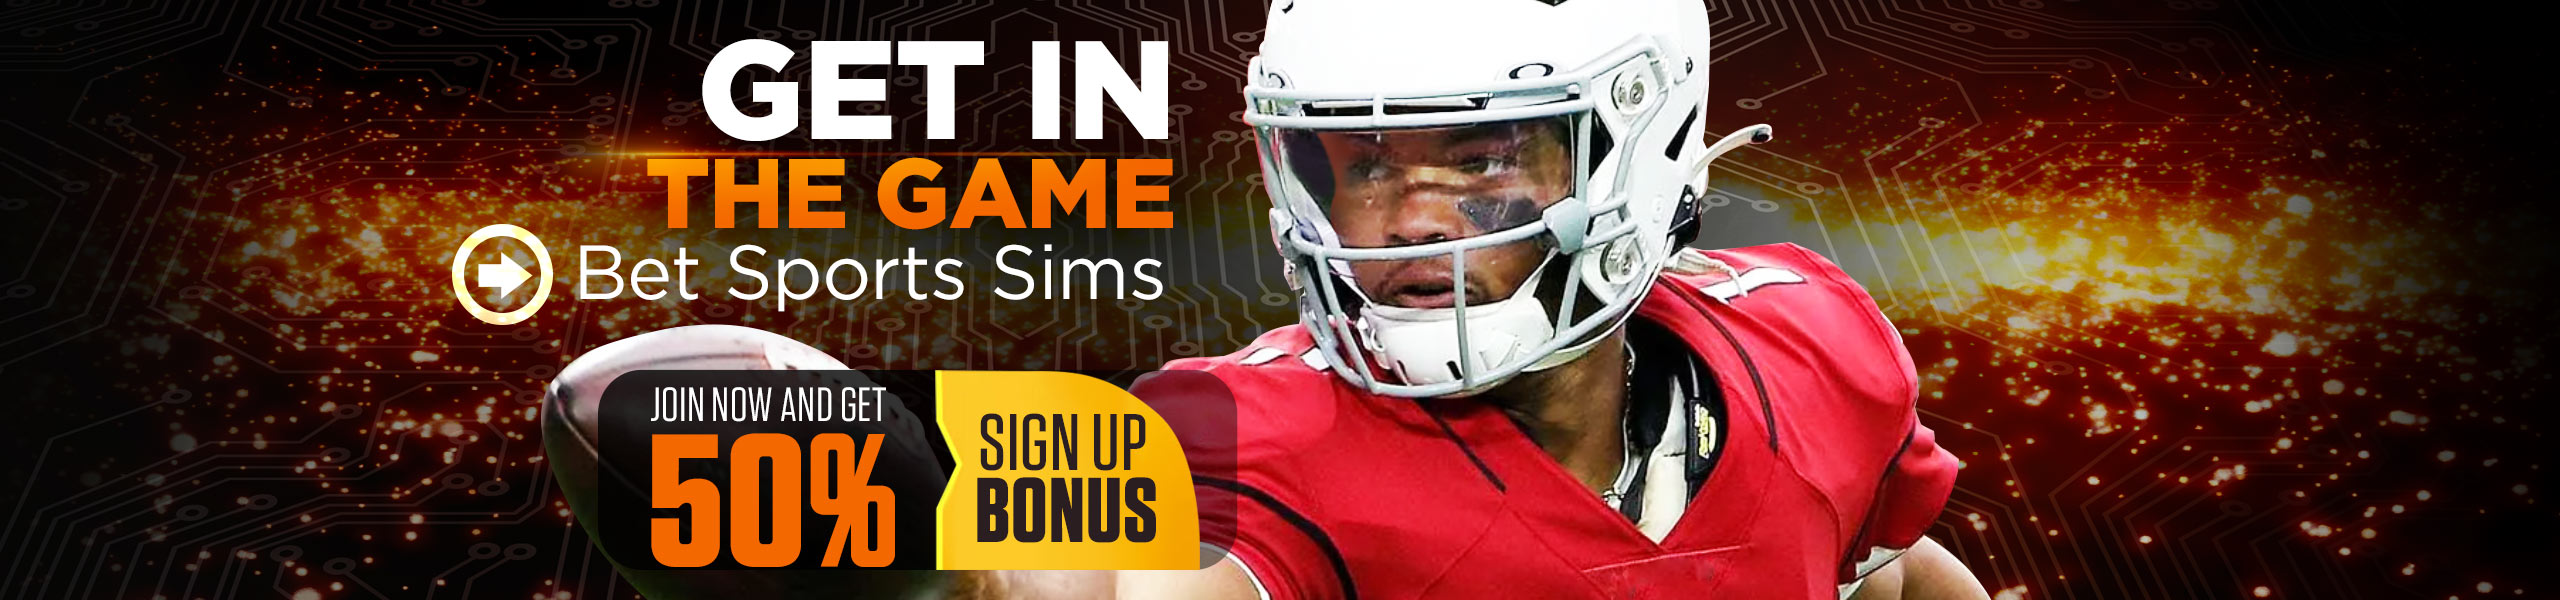 Get in The Game Bet Sports Sims